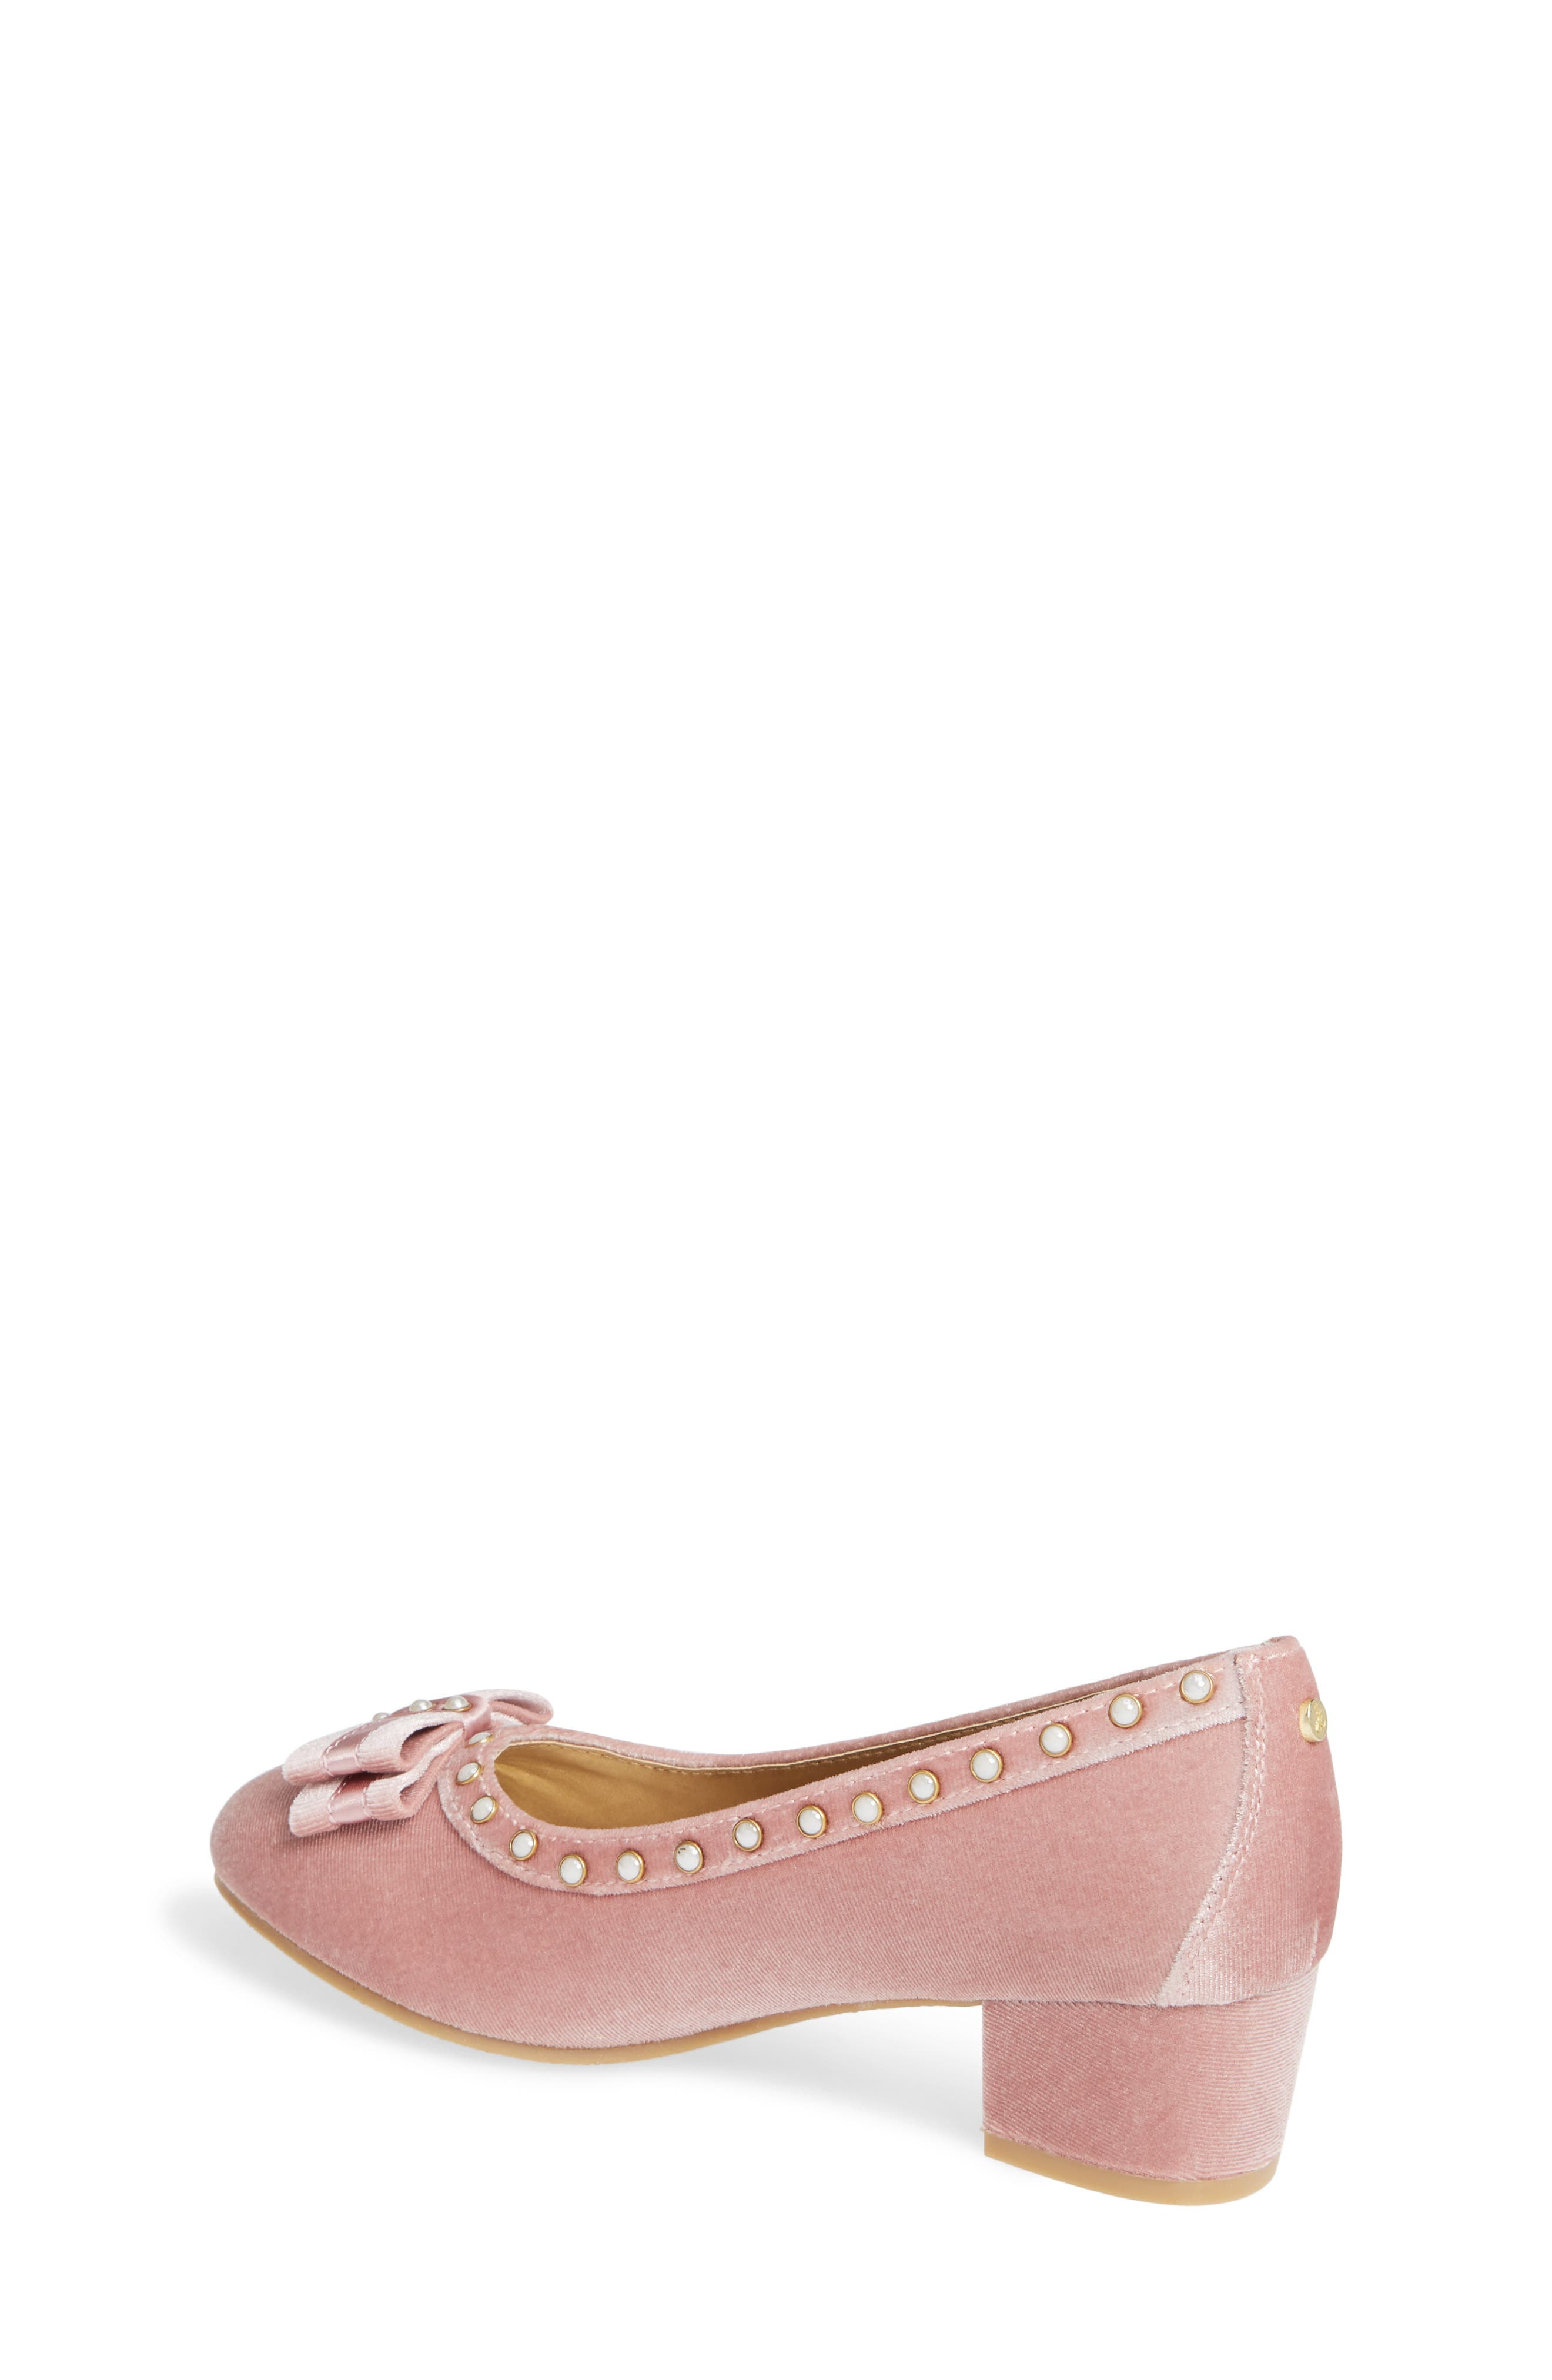 Evelyn Kammie Pump,                             Alternate thumbnail 2, color,                             MELLOW ROSE